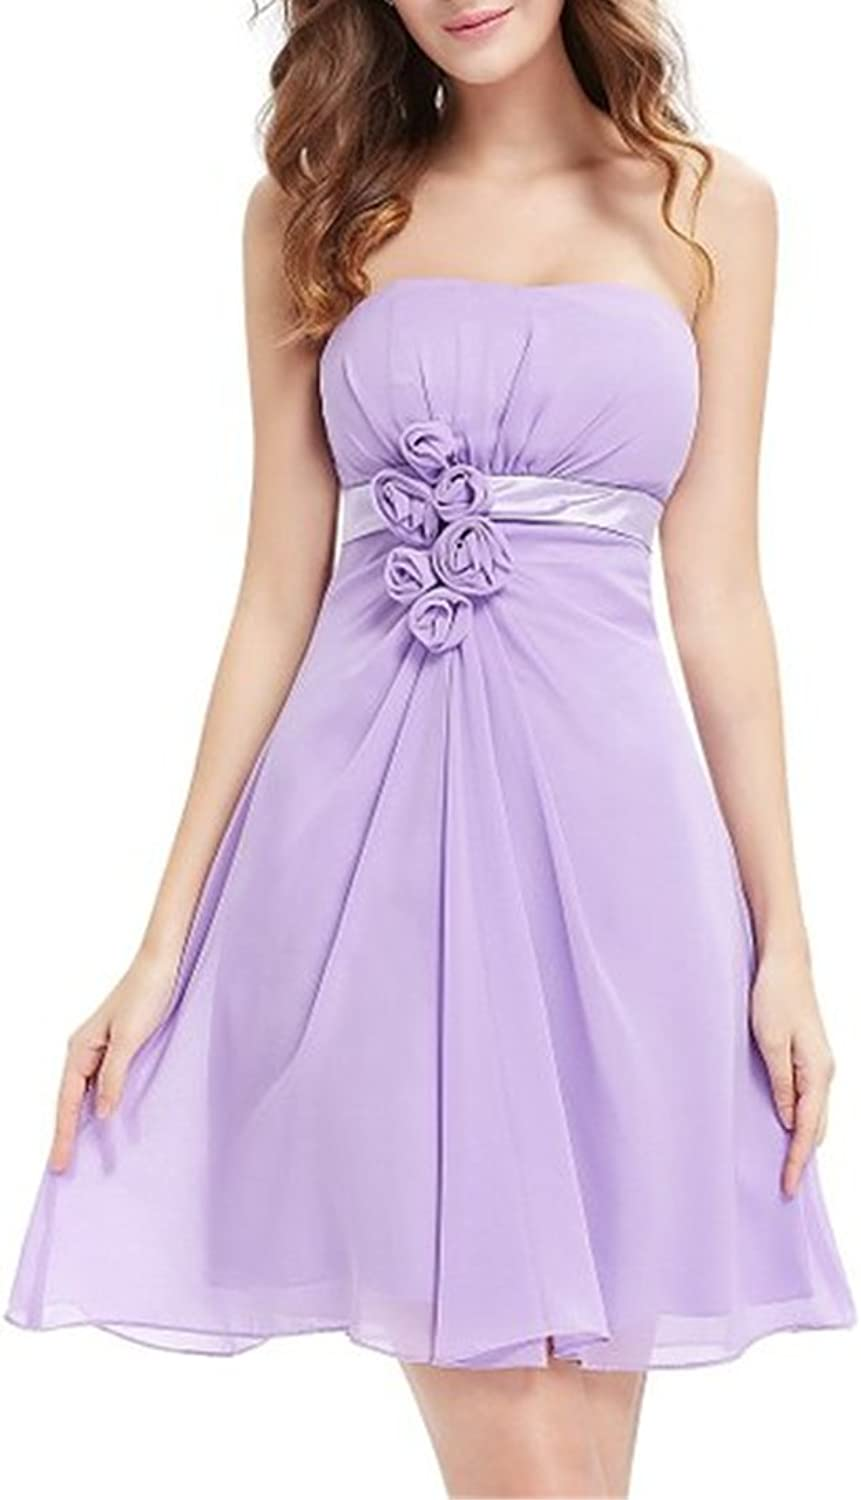 DianSheng Women's Strapless Floral Empire Short Prom Dress Bridesmaid Dress